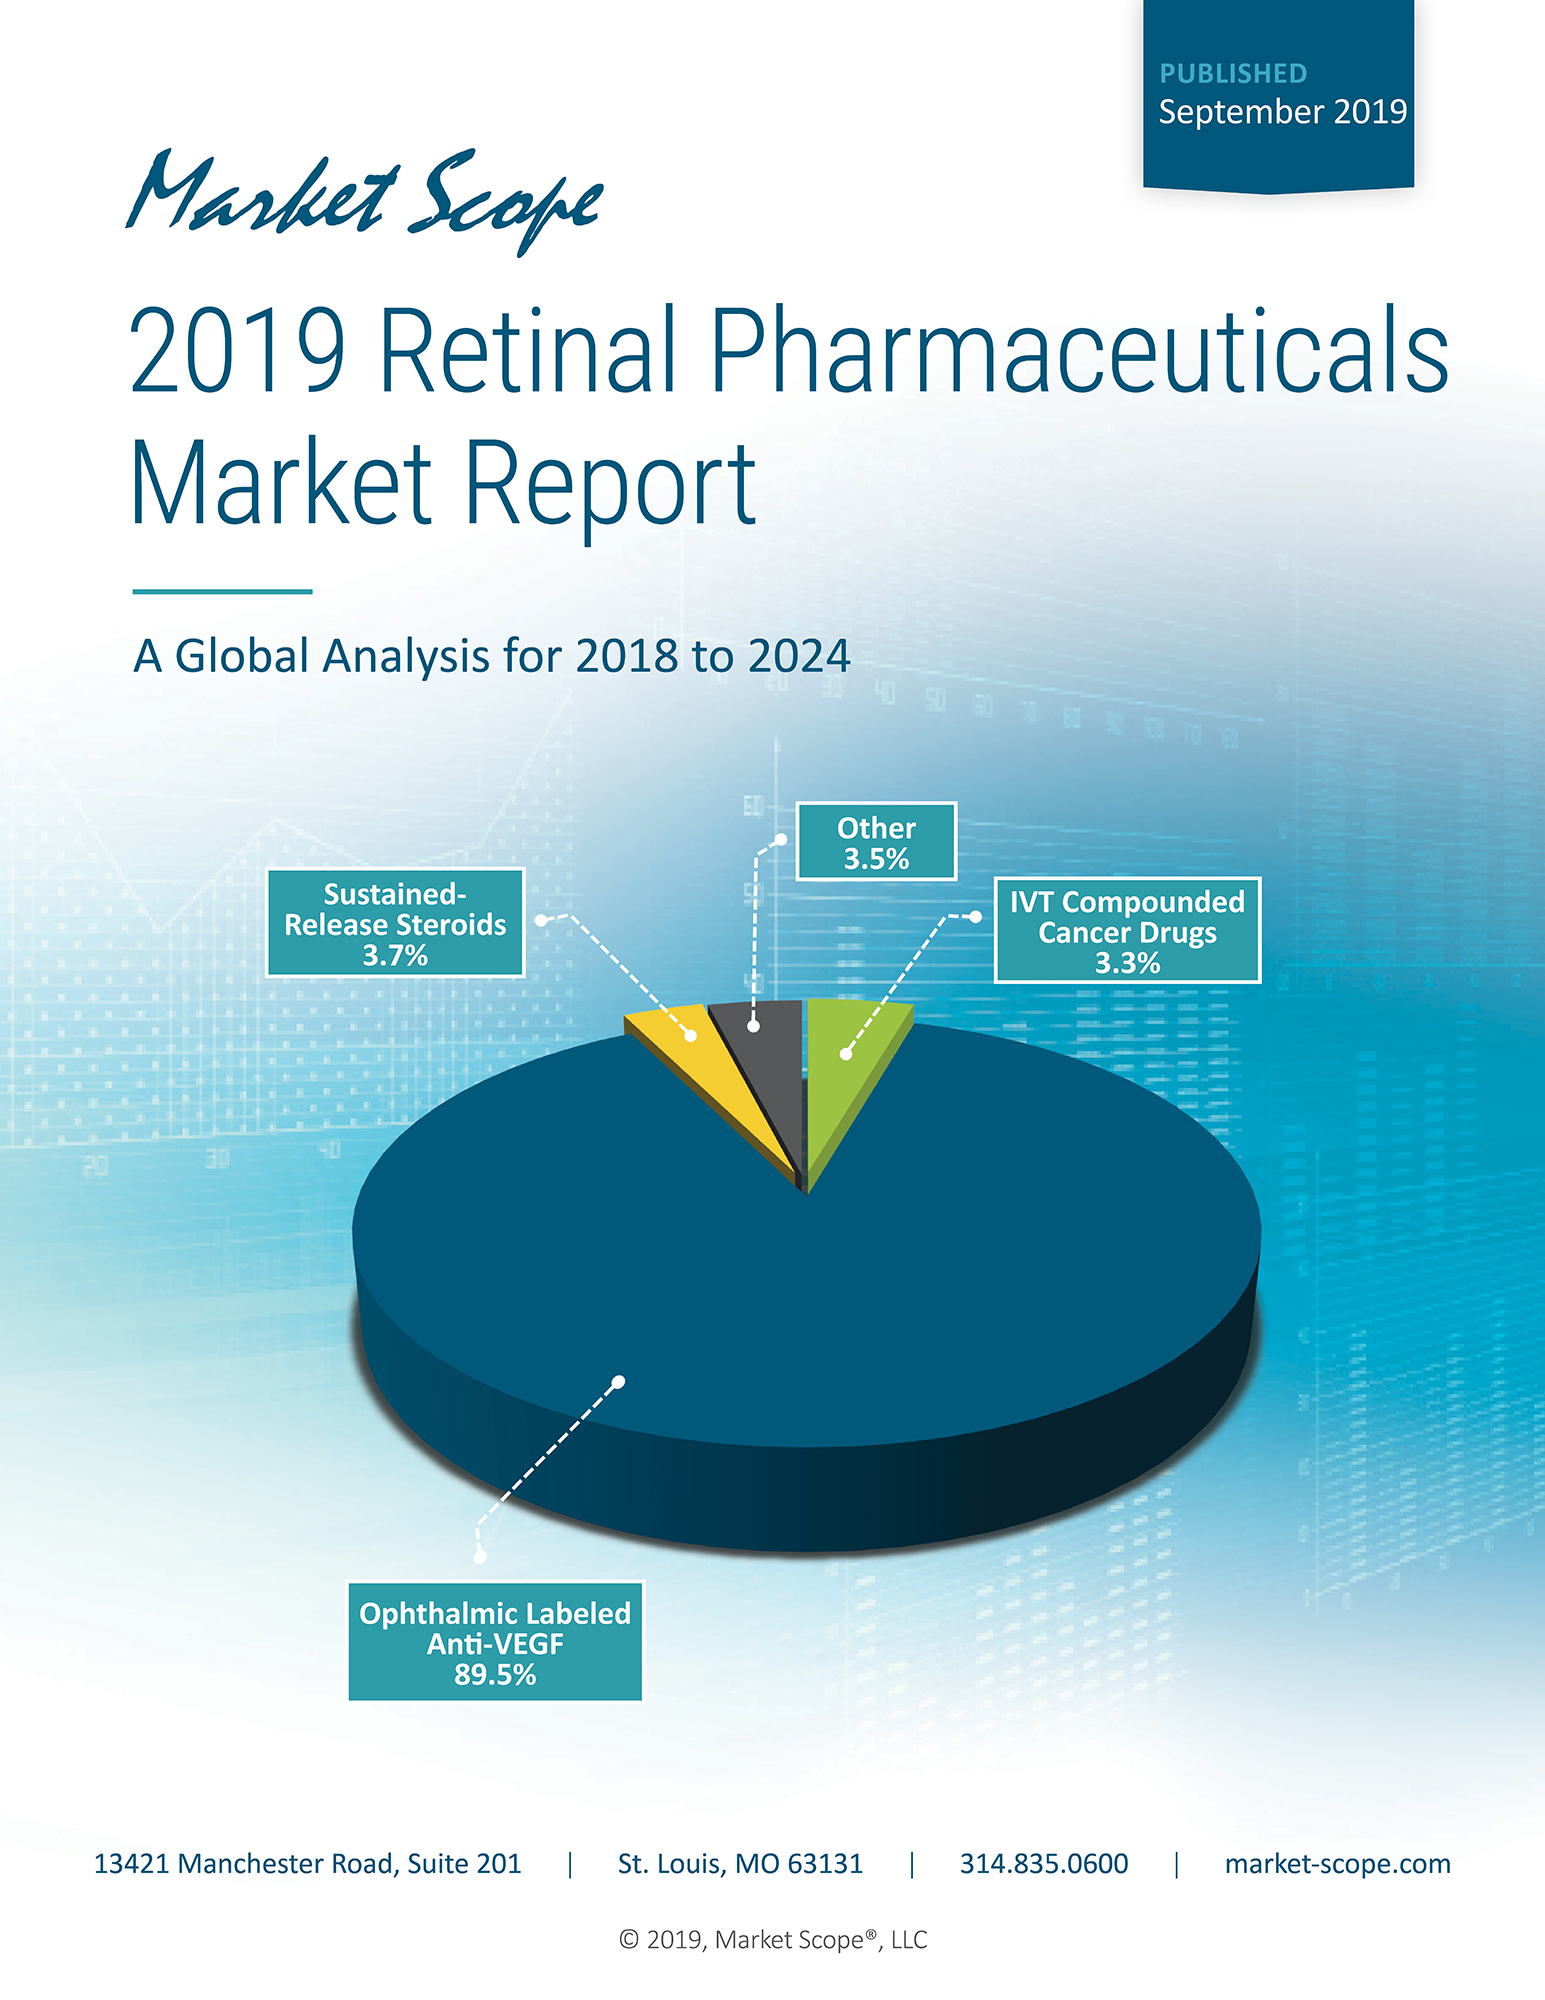 2019 Retinal Pharmaceuticals Market Report: A Global Analysis for 2018 to 2024, September, 2019